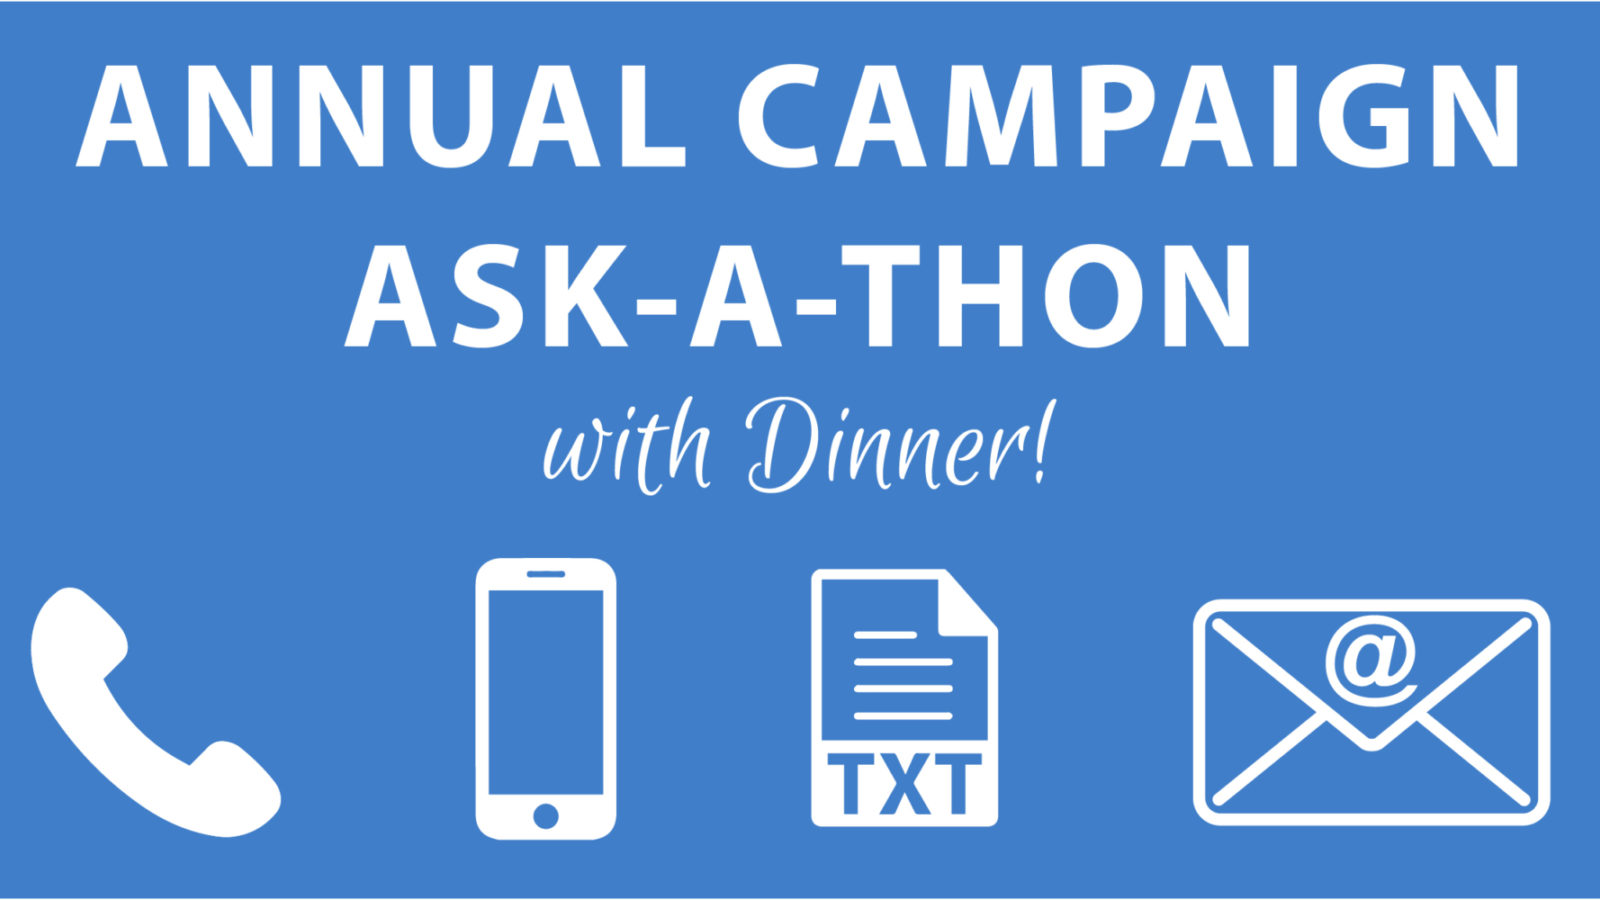 Annual Fundraising Campaign Ask-a-thon